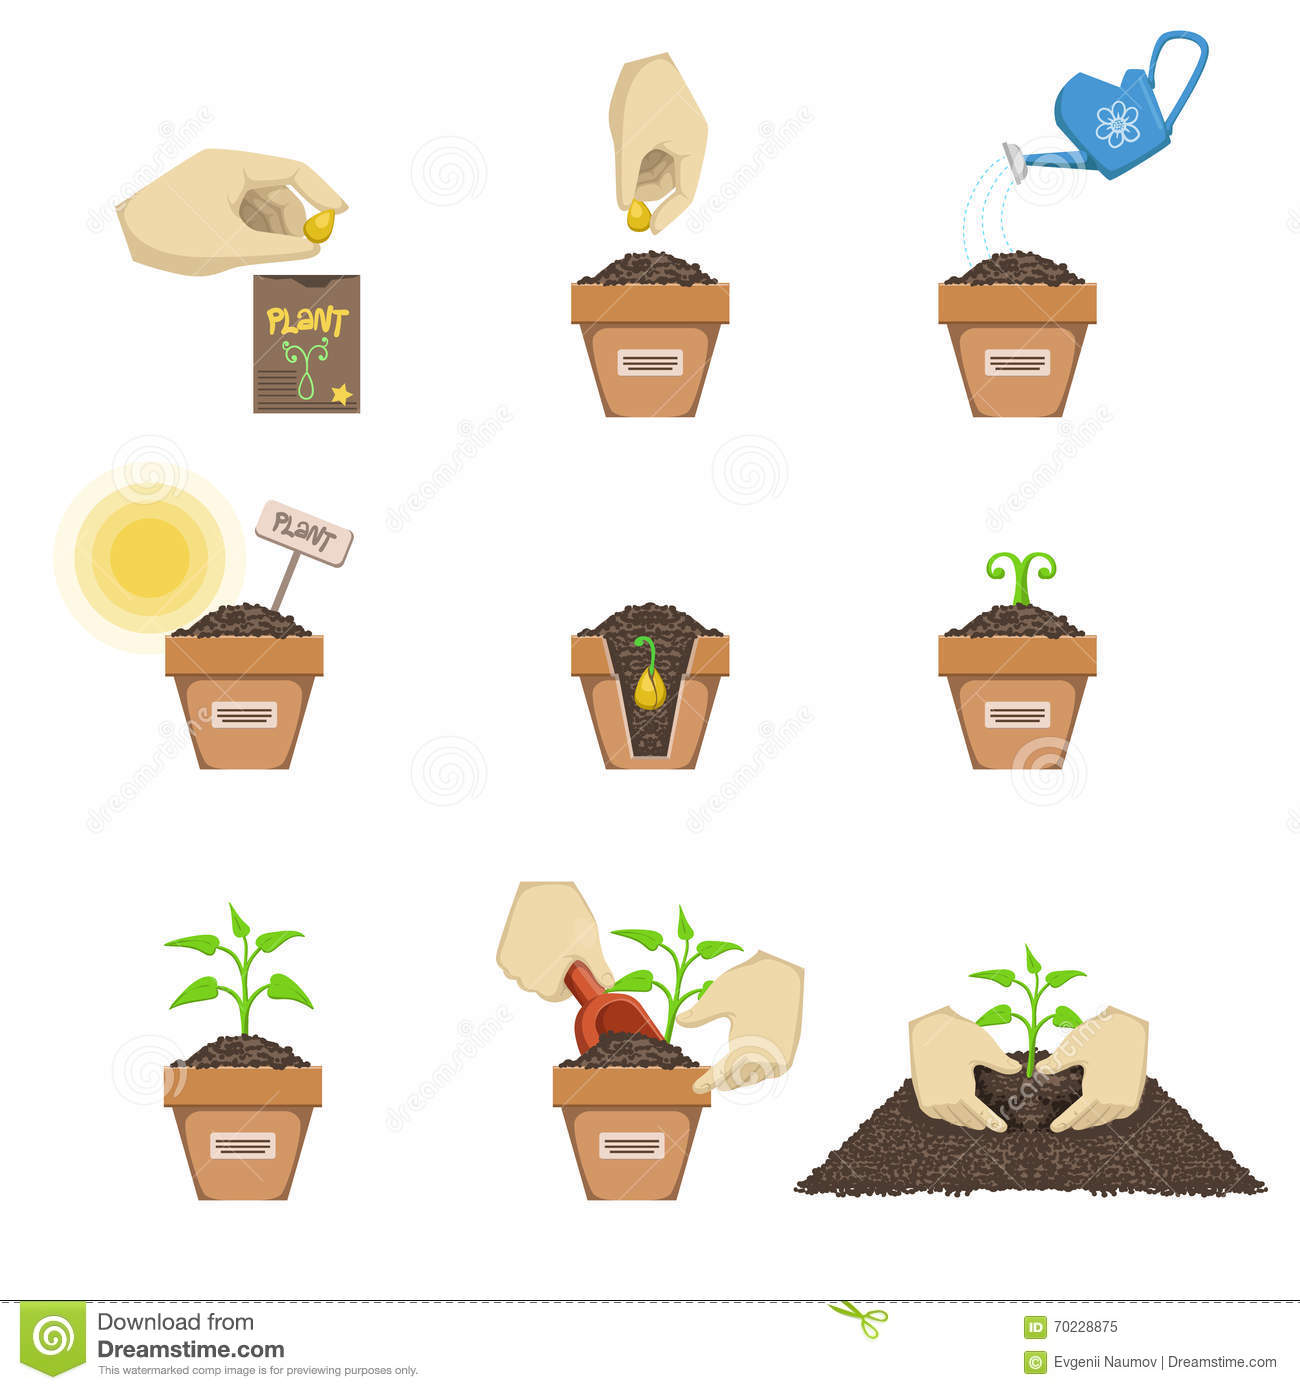 Planting The Seed Sequence Stock Vector Illustration Of Planting